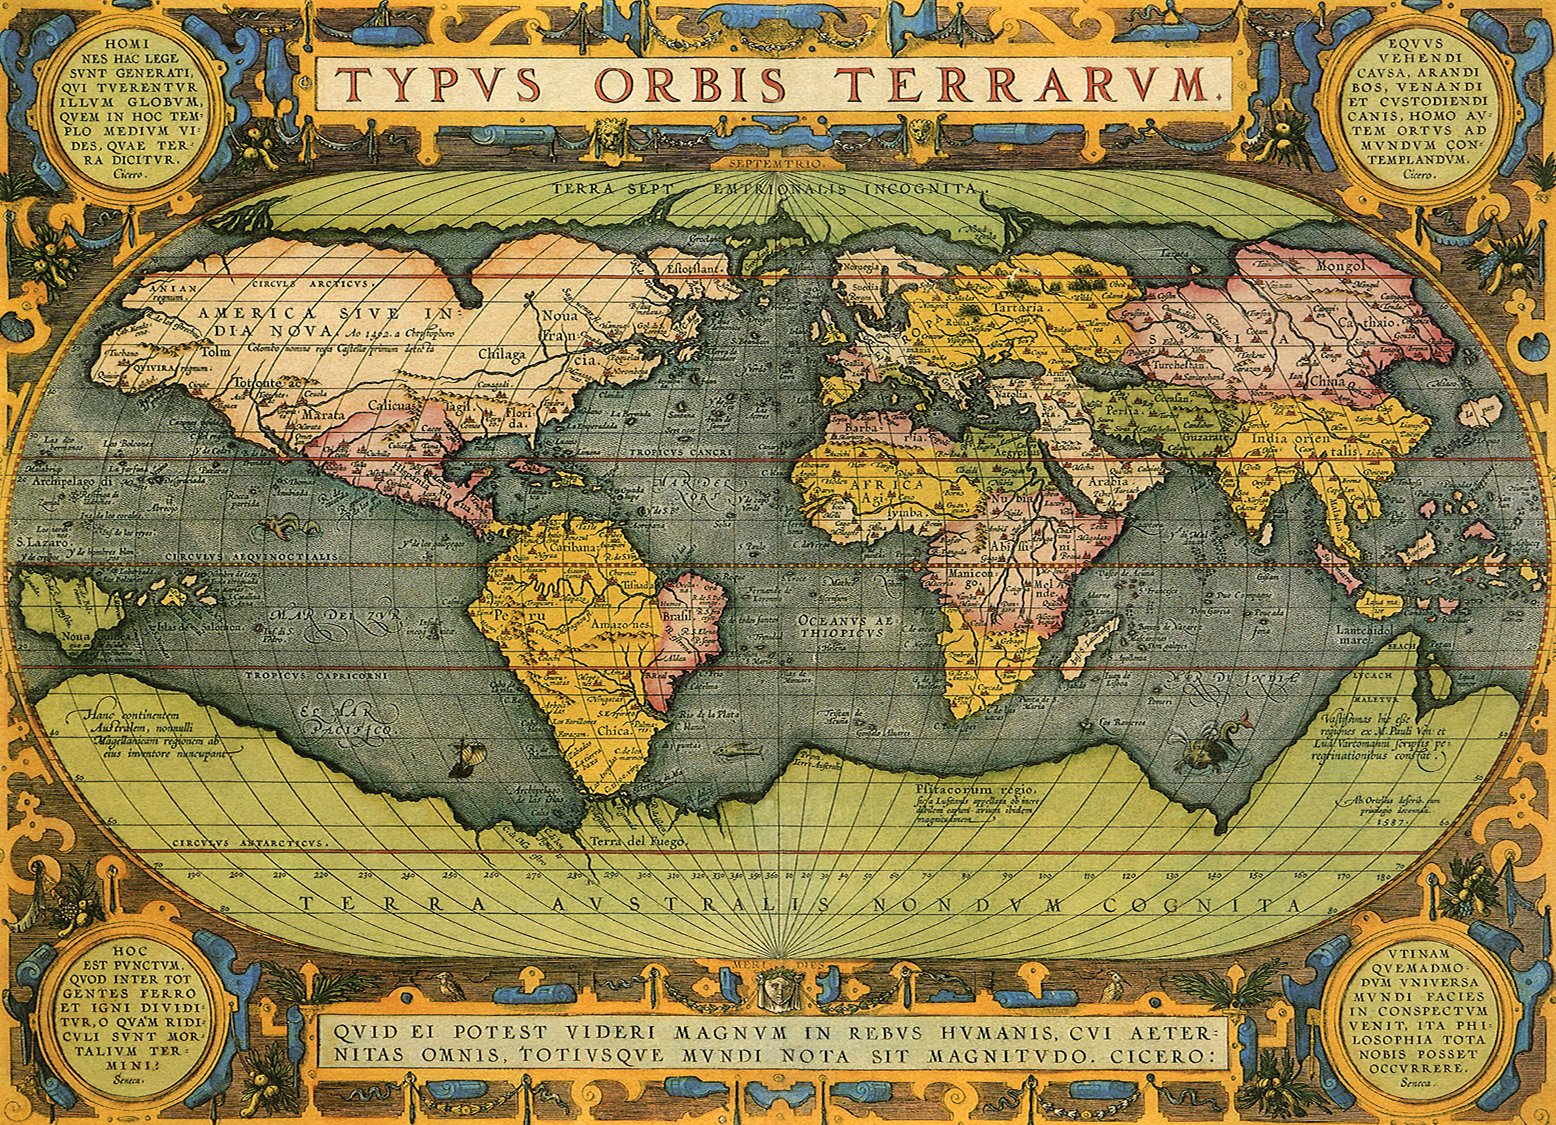 Antique World Map 1587 – The Conservative National Association of ...